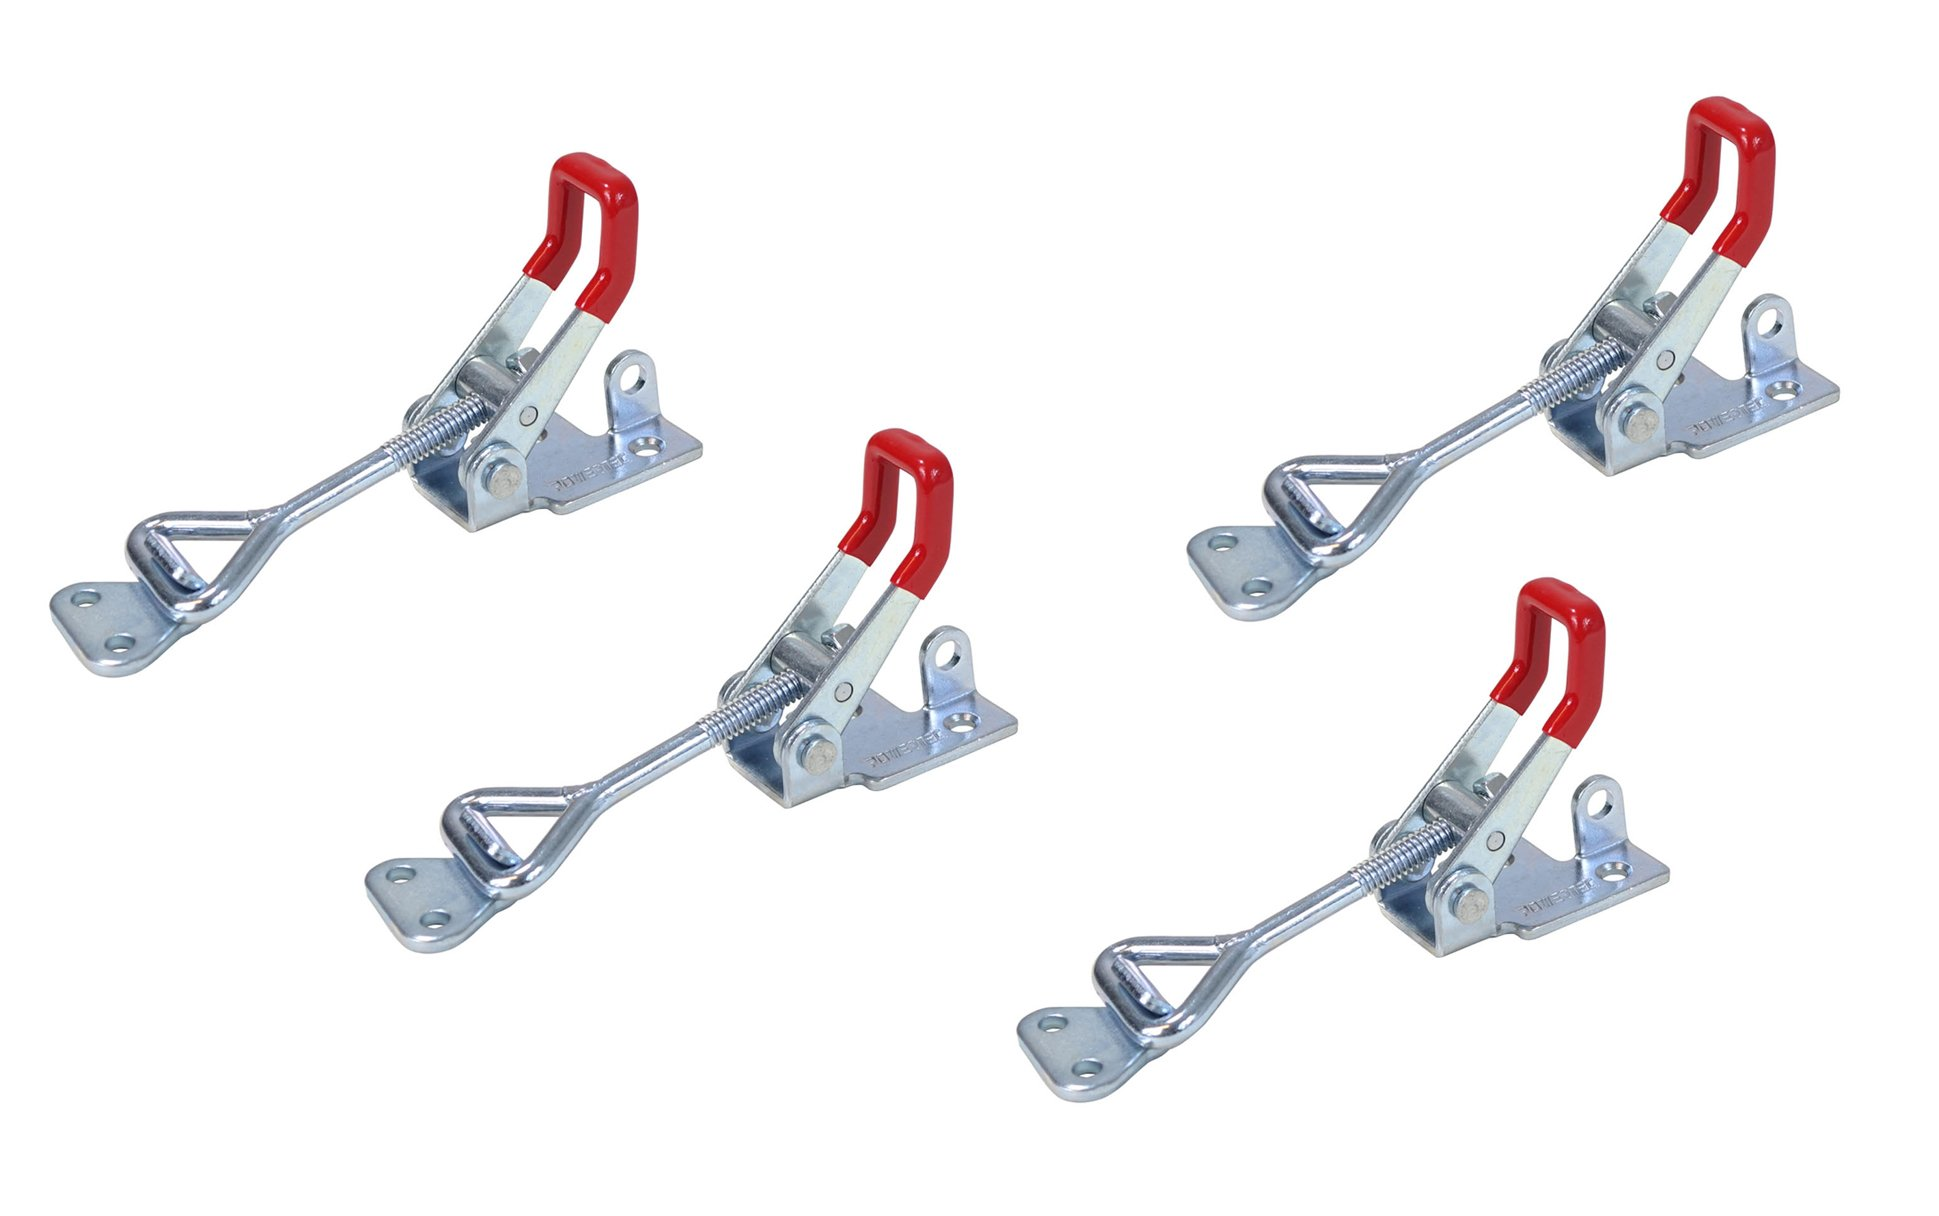 POWERTEC 20333 Pull-Action Latch Toggle Clamp, 400 lbs Capacity, 4002, 4PK